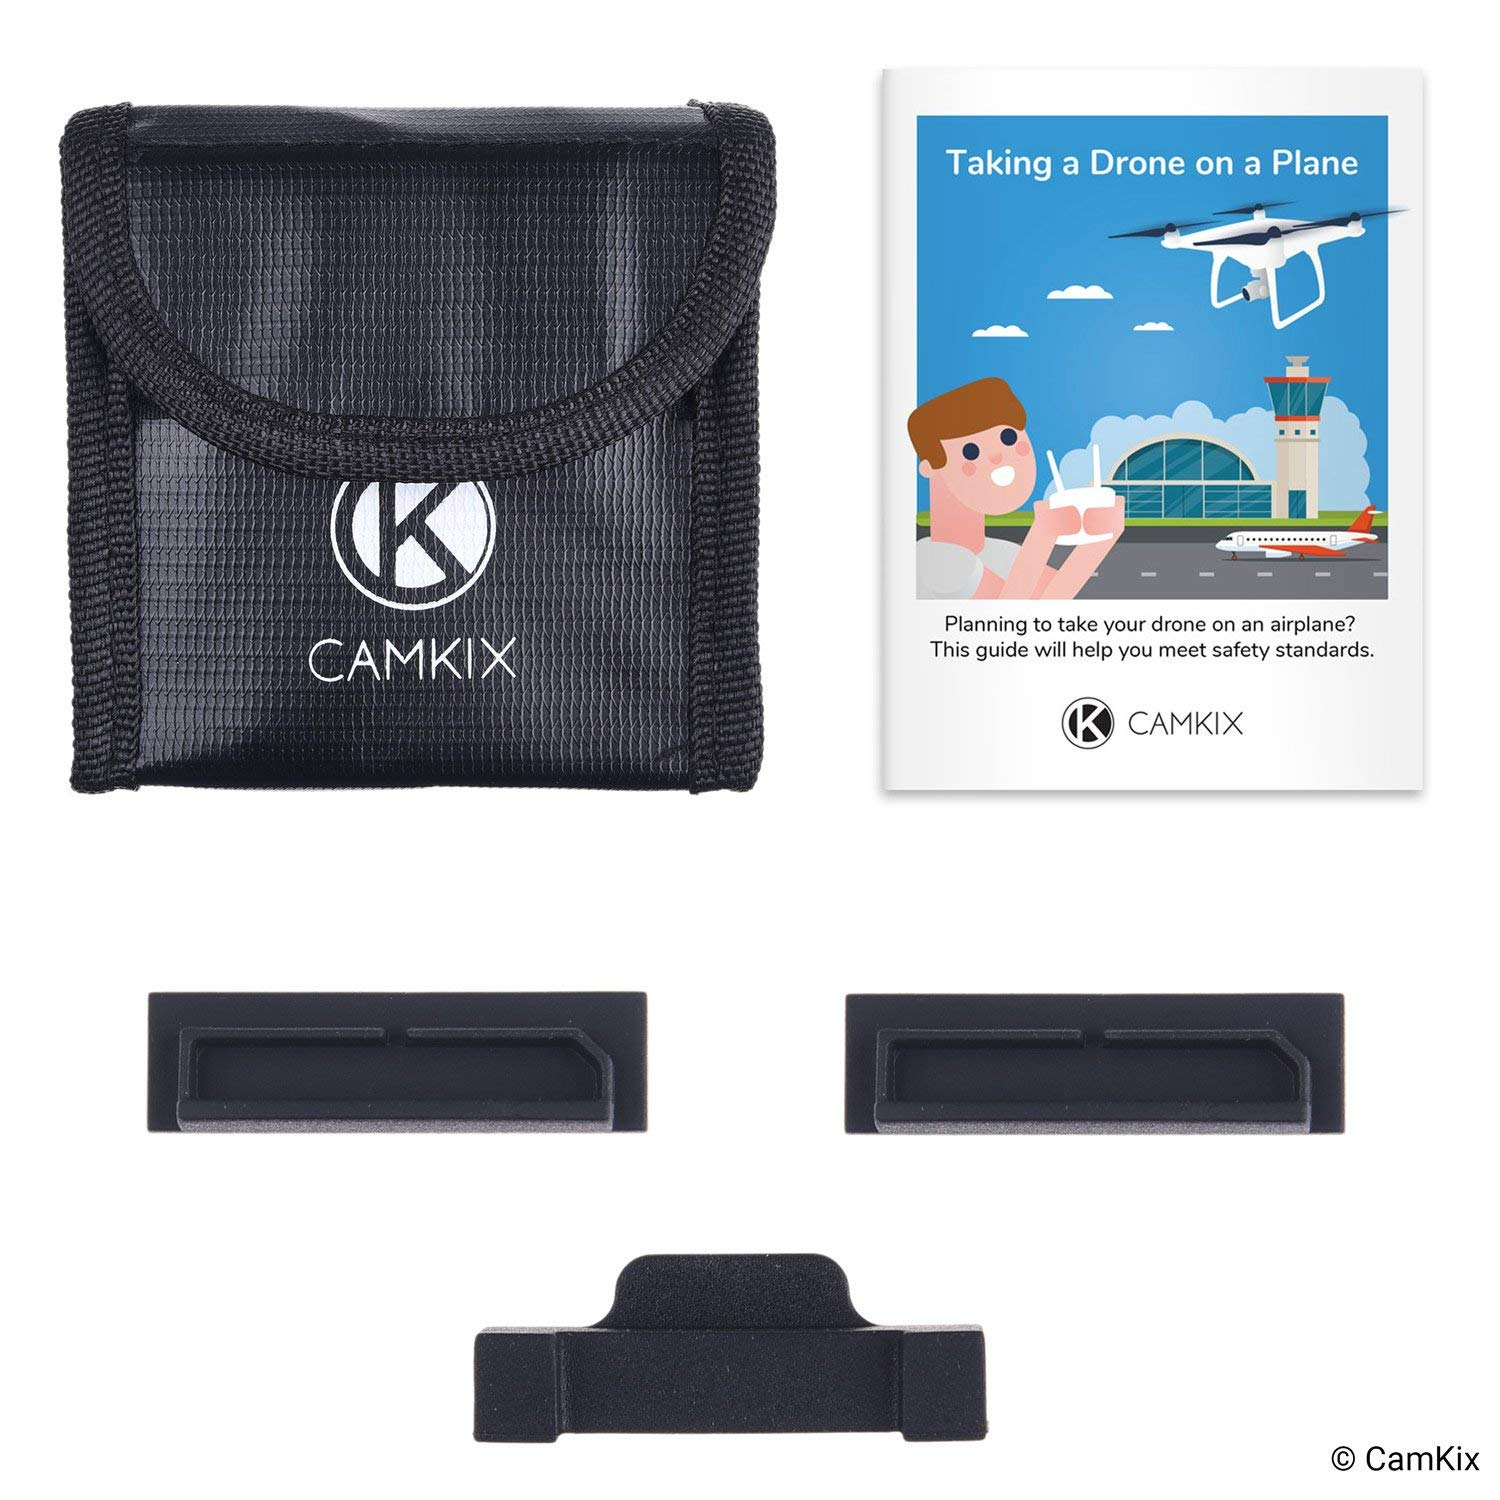 Includes: LiPo Safety Bag For 2 Batteries Charge Port Cover and Travel Instructions CamKix Travel Safety Pack compatible with DJI Mavic Pro//Platinum 2x Battery Port Cover